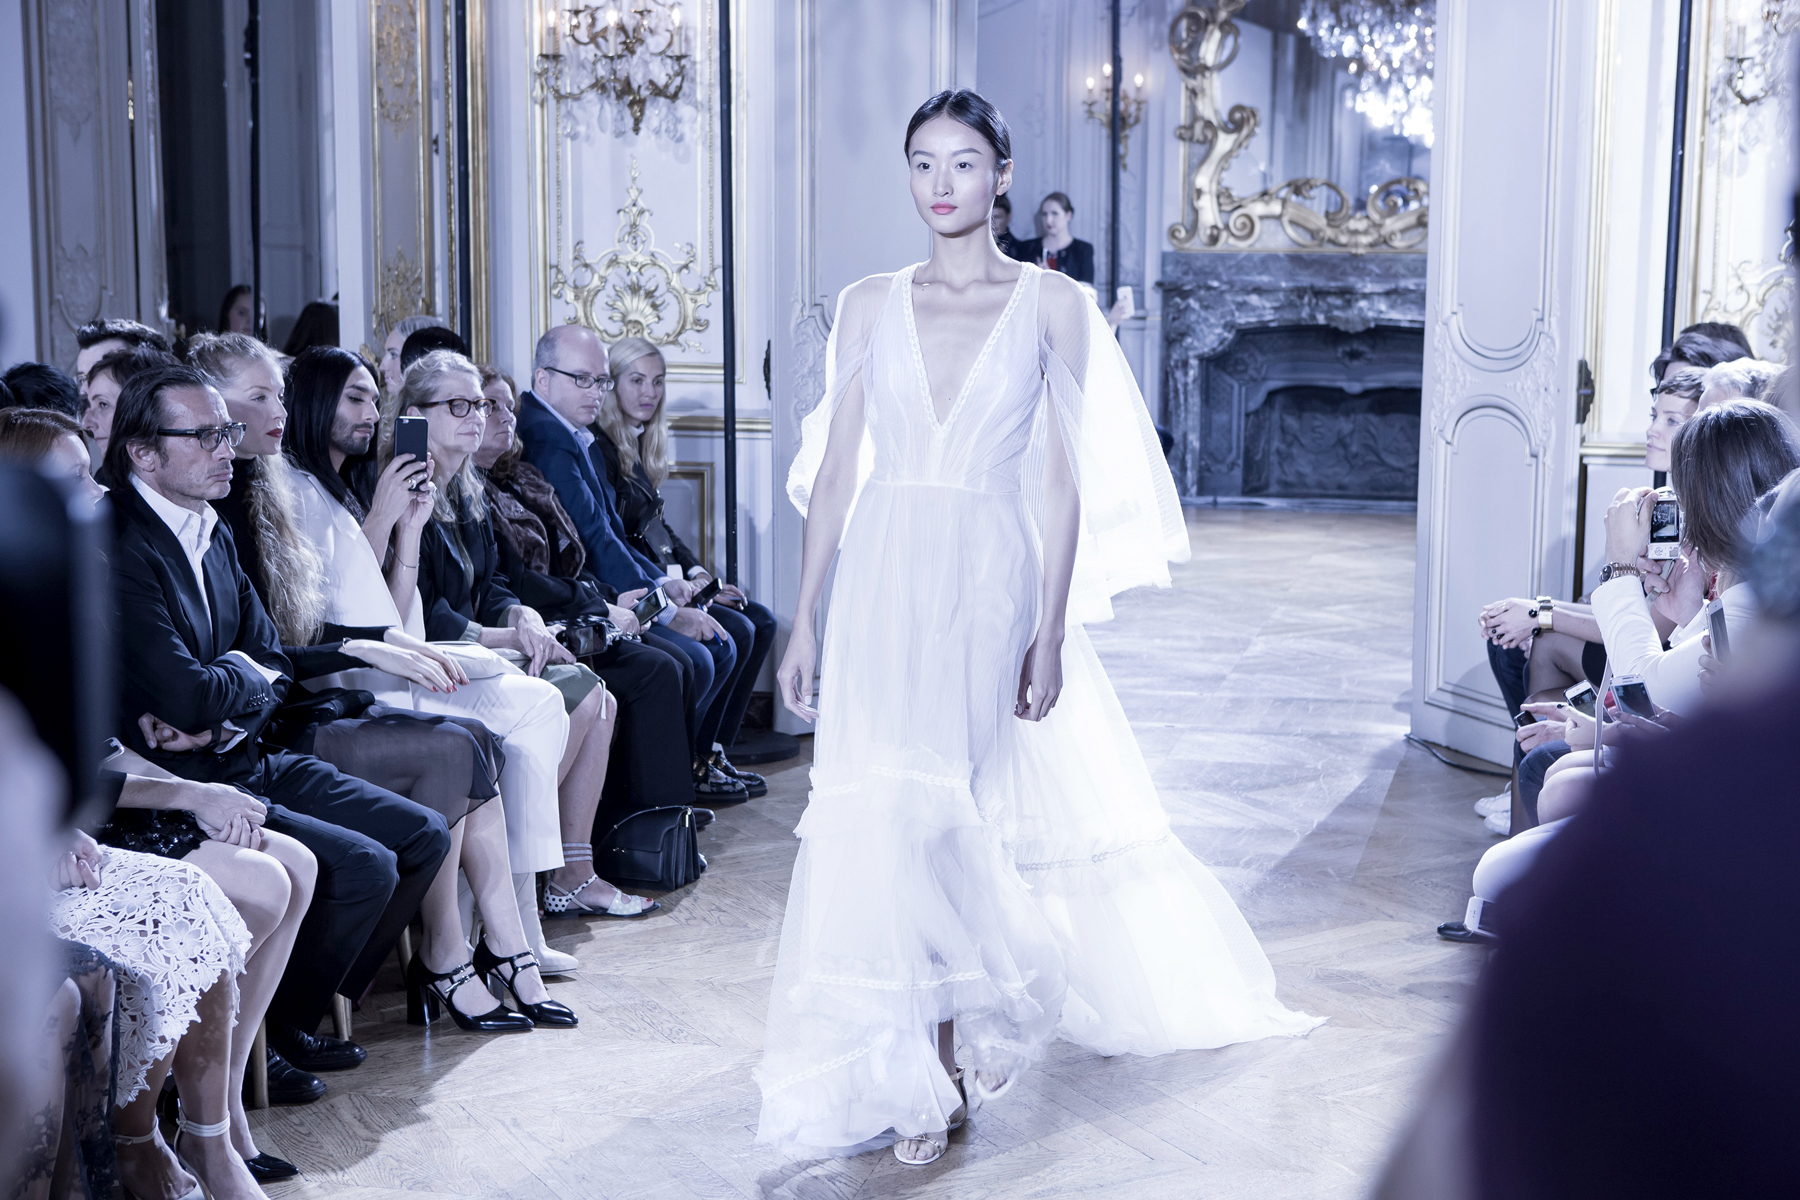 kaviar gauche s/s 2016 paris fashion week pfw presentation bridal dresses white makeup catrice cosmetics brautmode fashionblogger ricarda schernus cats & dogs blog 2